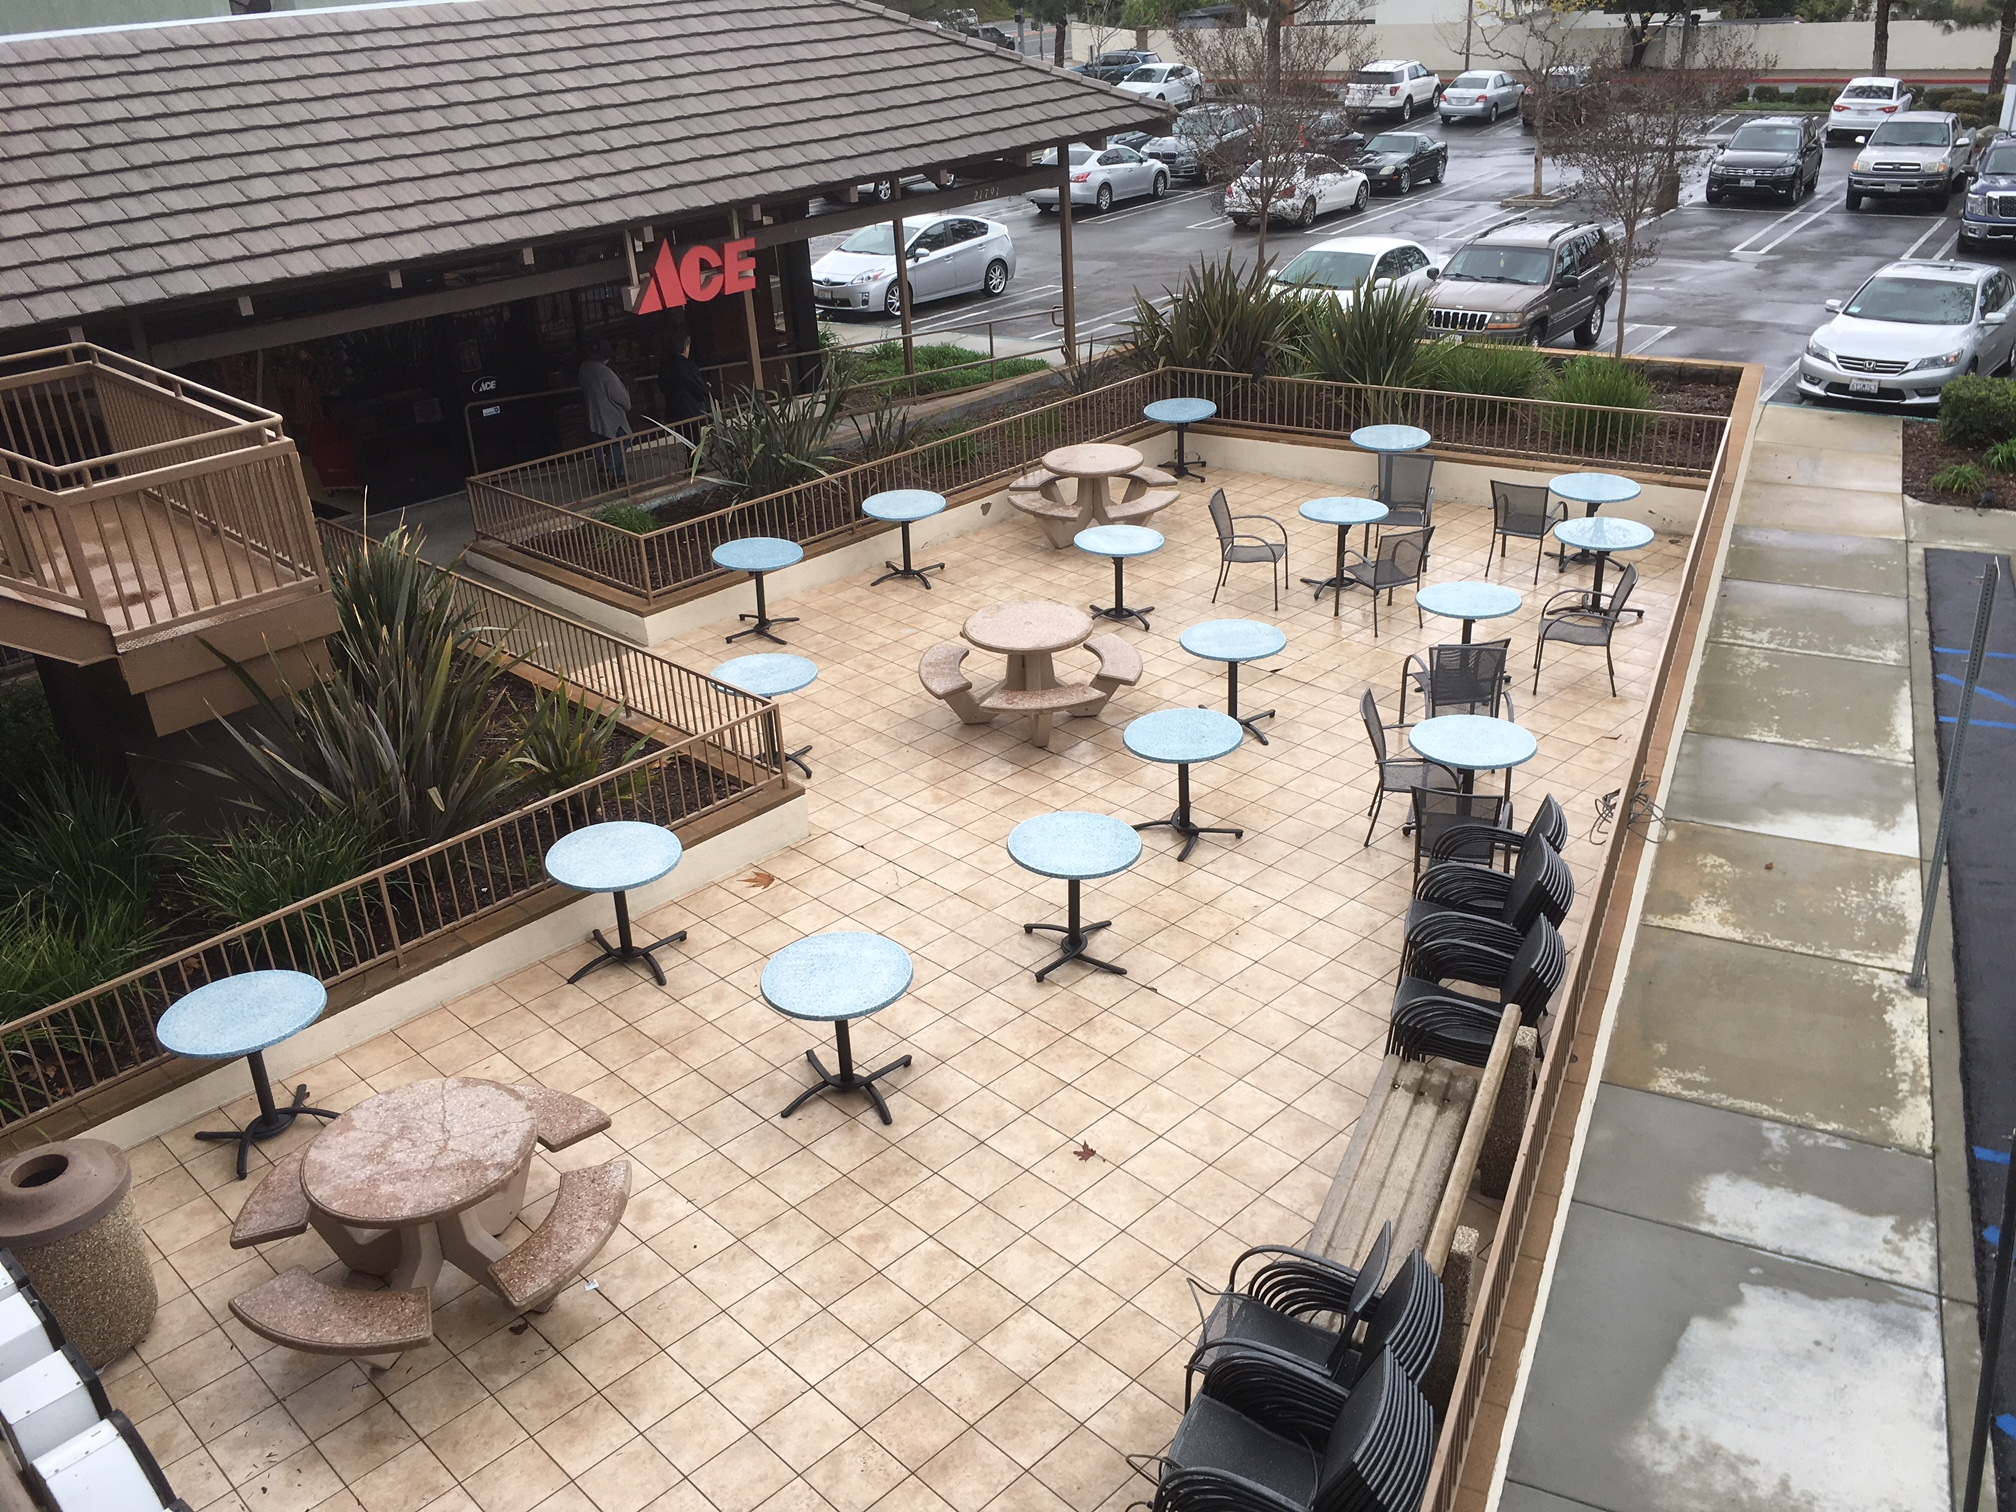 Plenty of seating & bike parking across the lot in front of the Ace Hardware store.